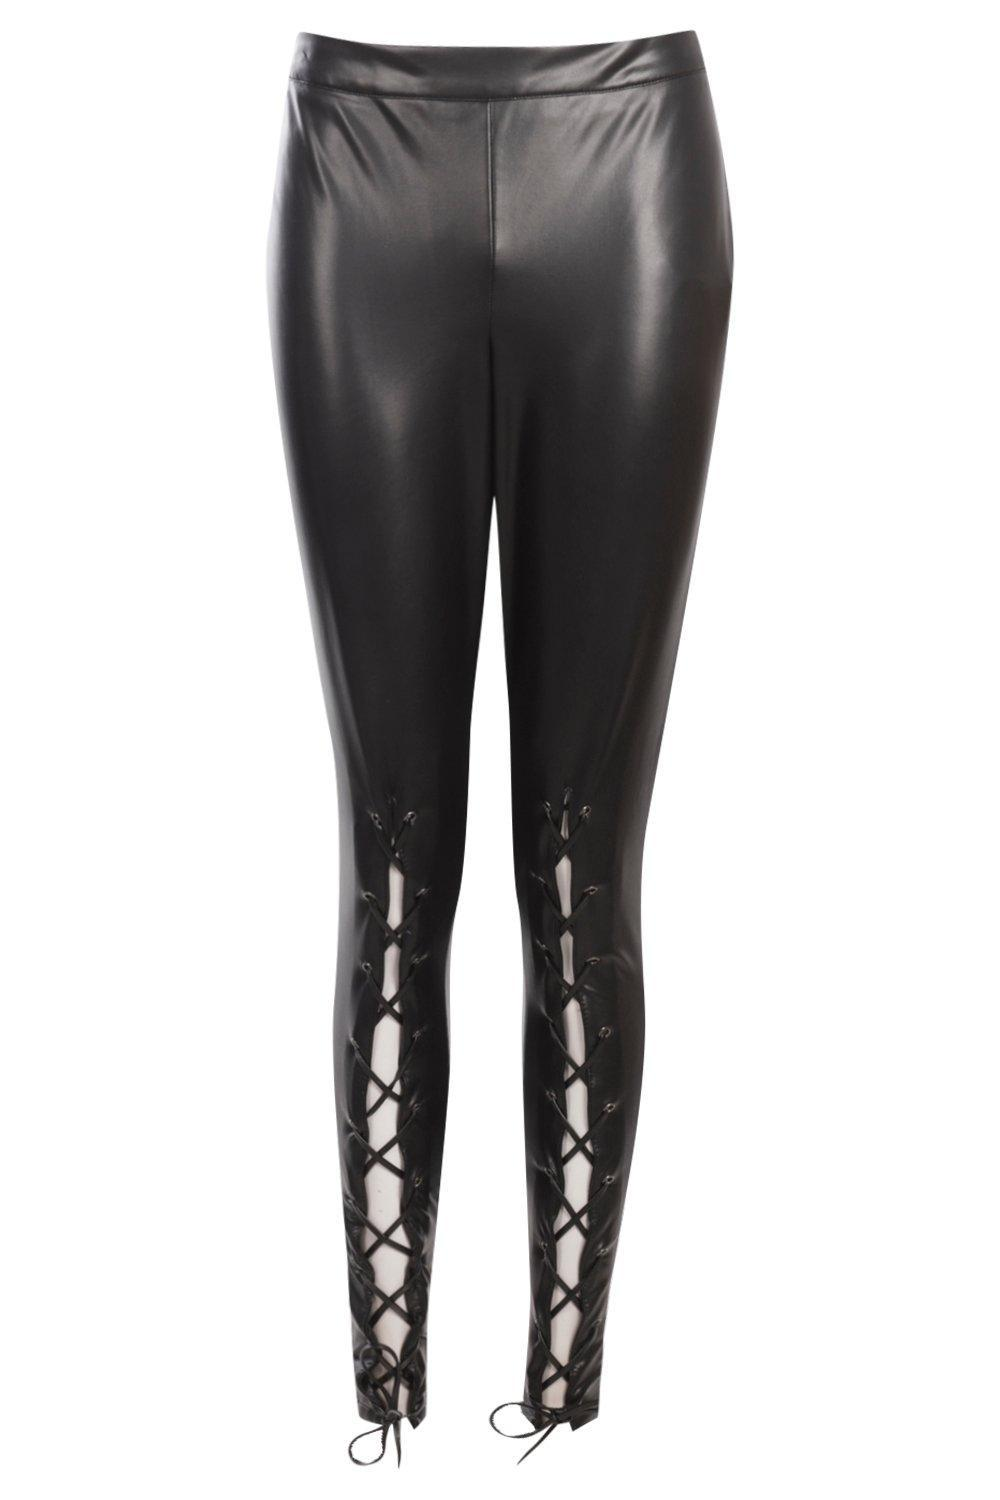 f0cd50ba0e3bb5 Lyst - Boohoo Premium Lace Up Front Leather Look Trousers in Black